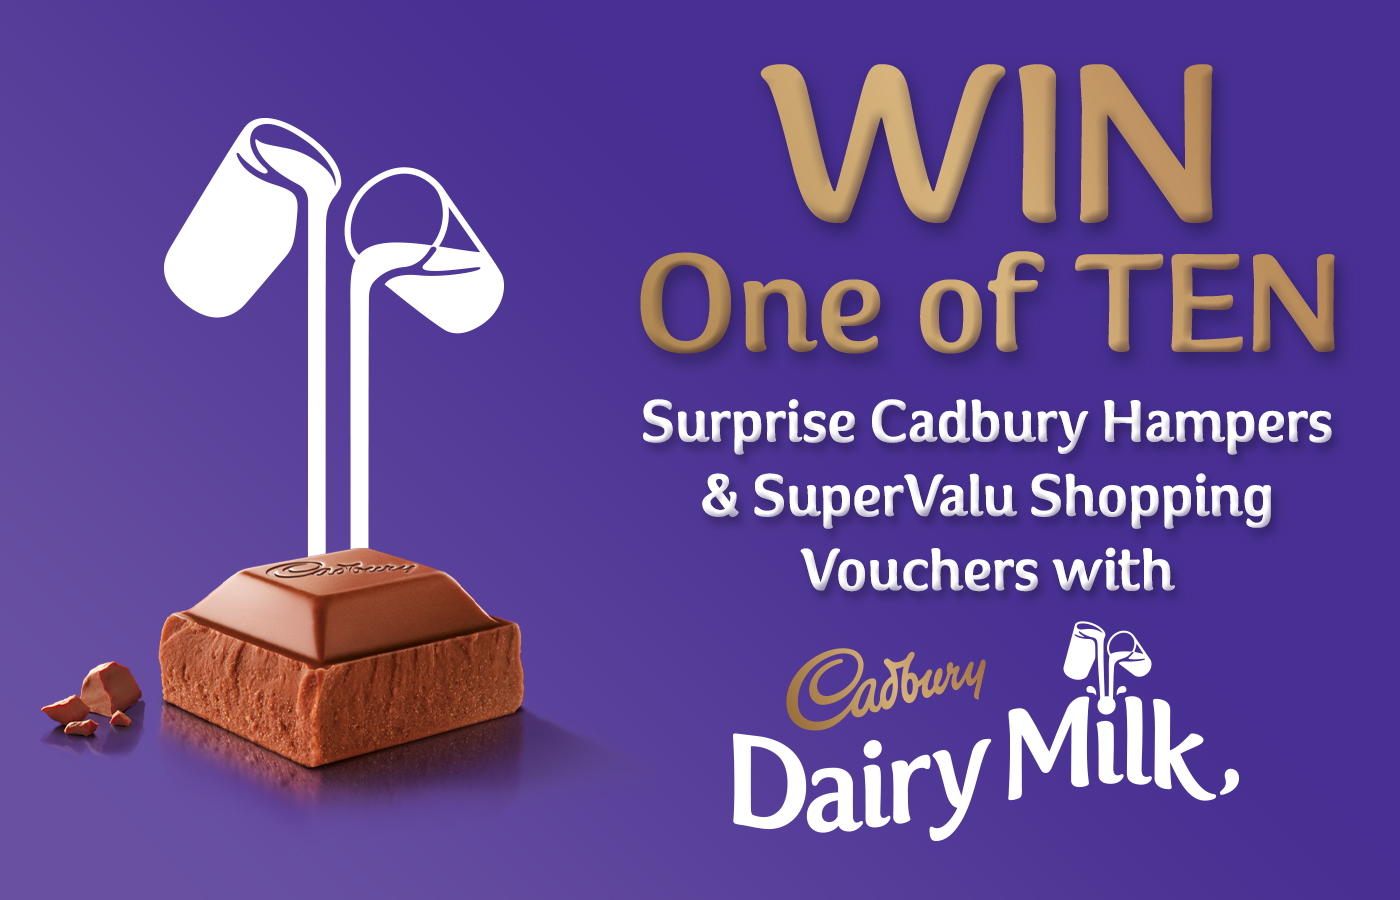 Win a 1 of 10 Cadbury hampers and SuperValu Shopping Vouchers